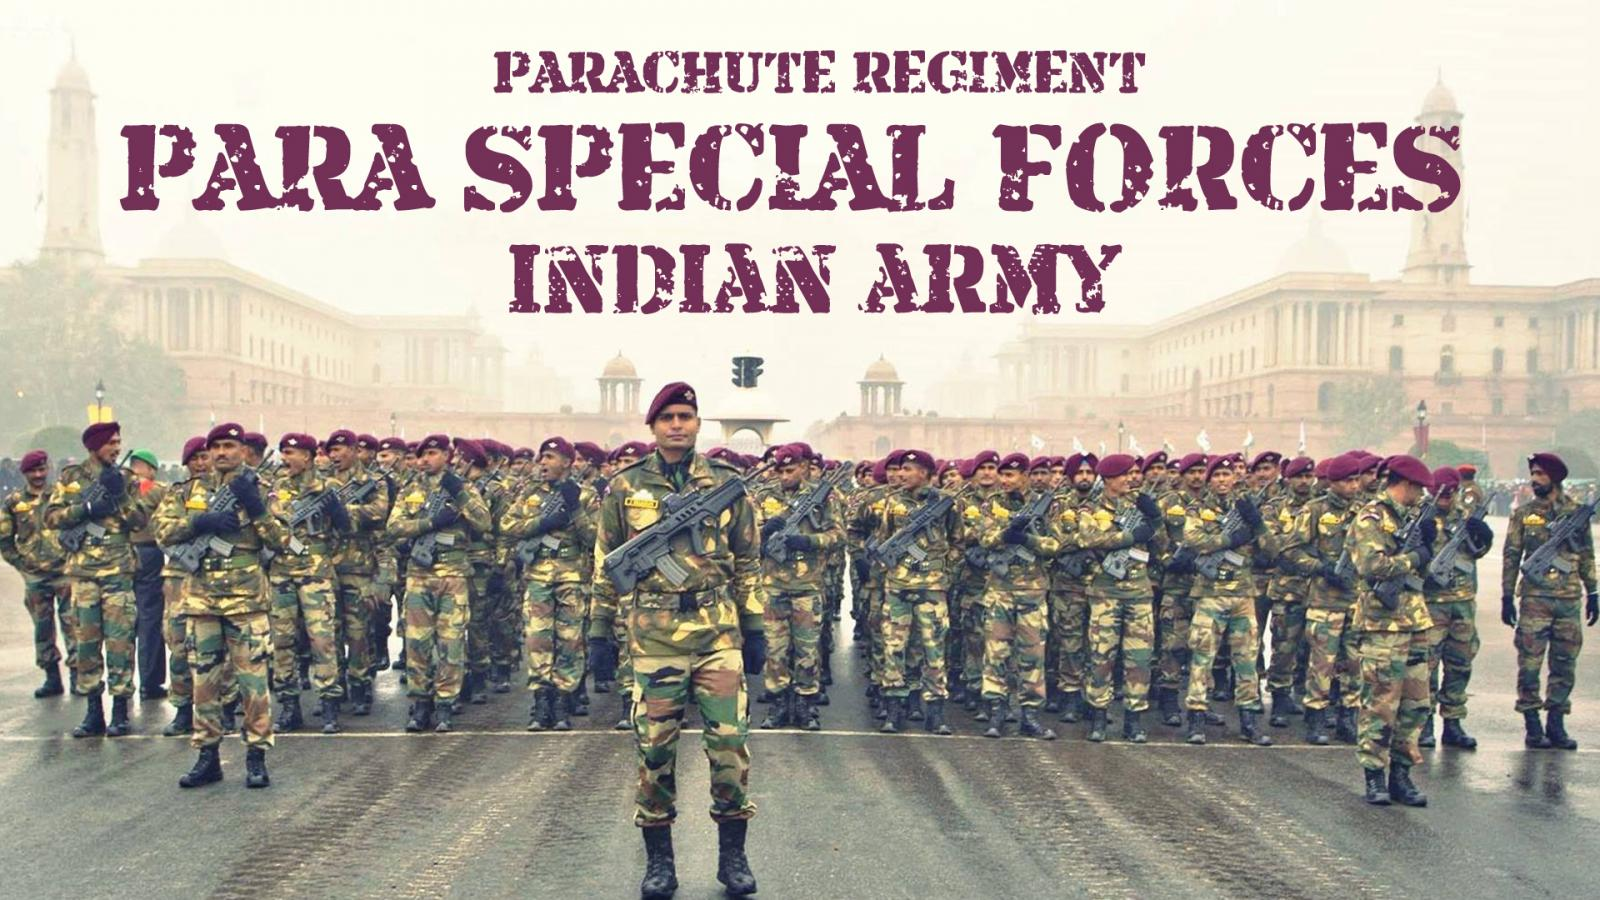 Para Special Forces Indian Army Wallpaper In HD